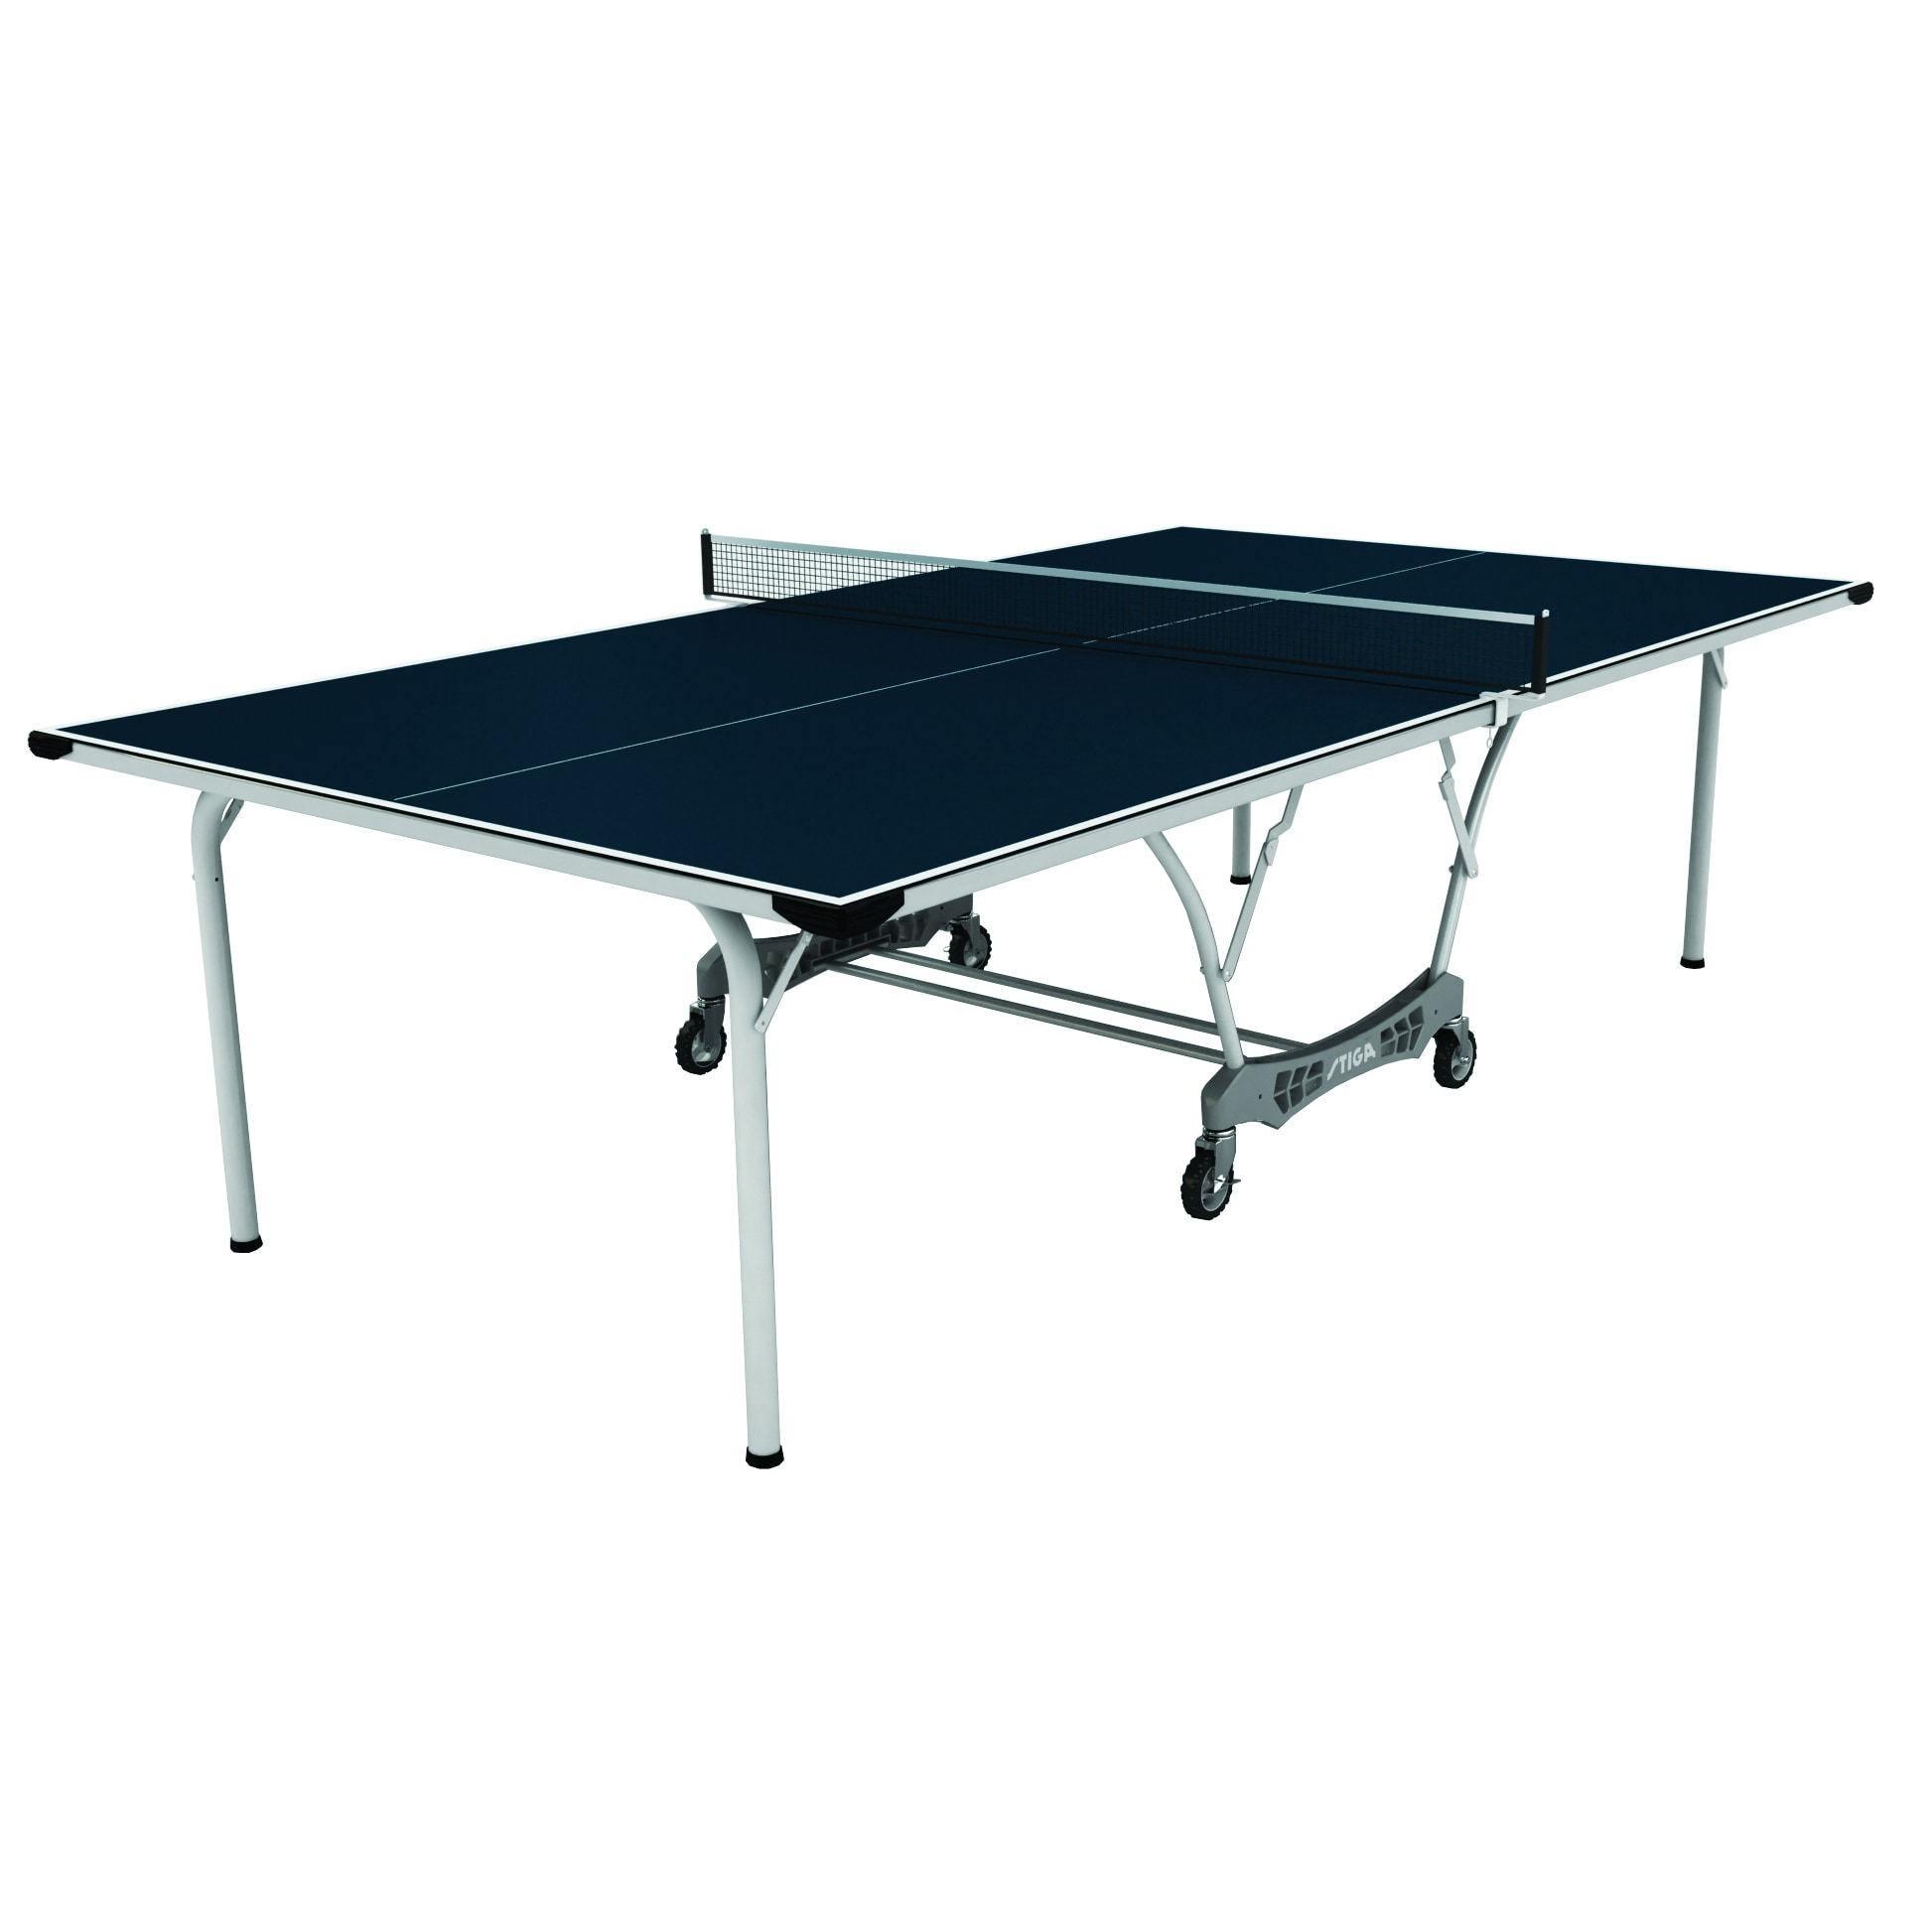 Buy table tennis outdoors brands - Stiga Coronado Indoor/Outdoor Table Tennis Table (Indoor/Outdoor)